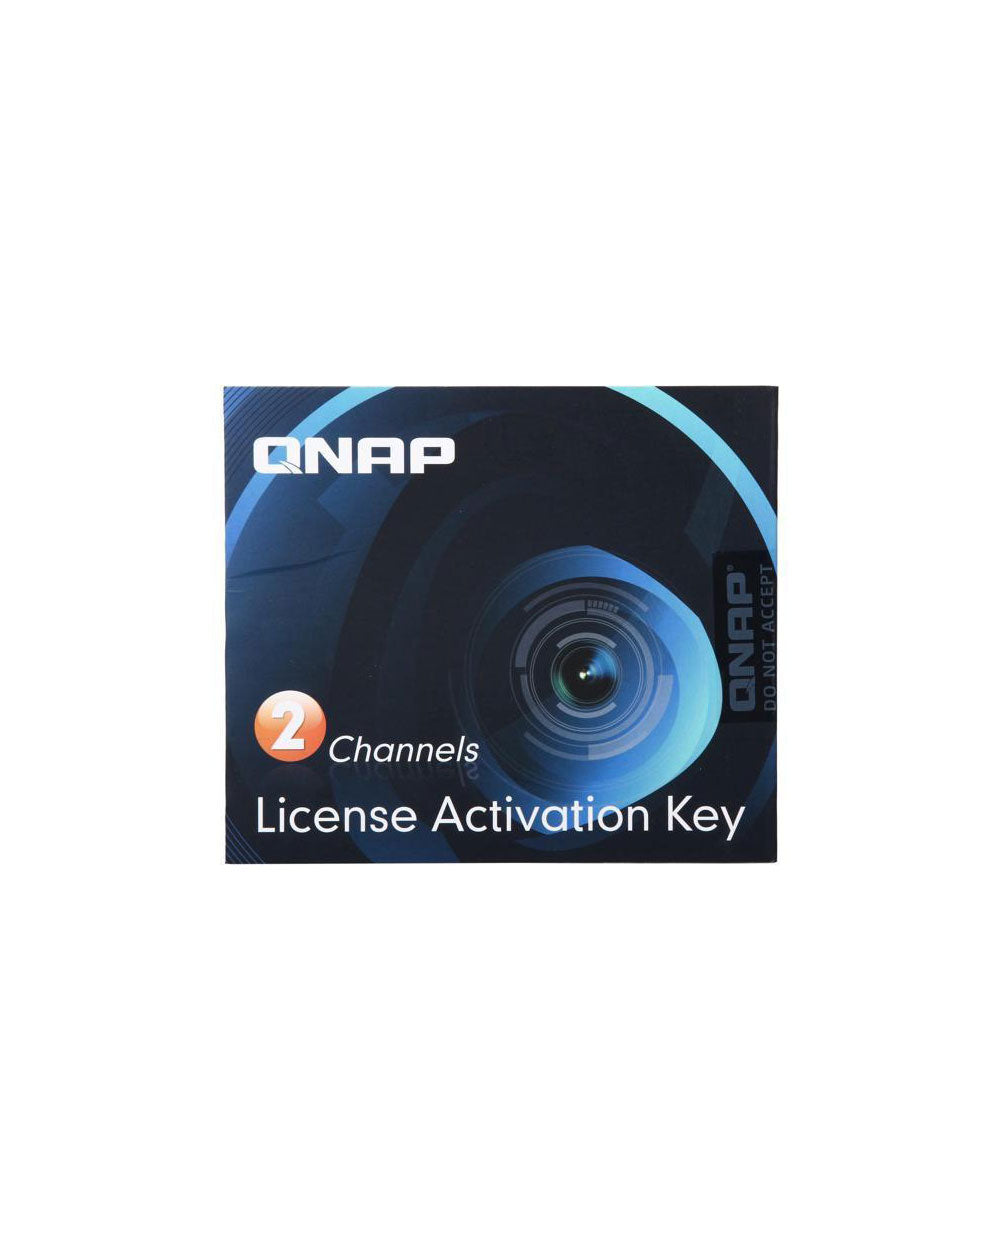 2 Camera License Activation Key for Surveillance Station Pro for QNAP NAS - LIC-CAM-NAS-2CH